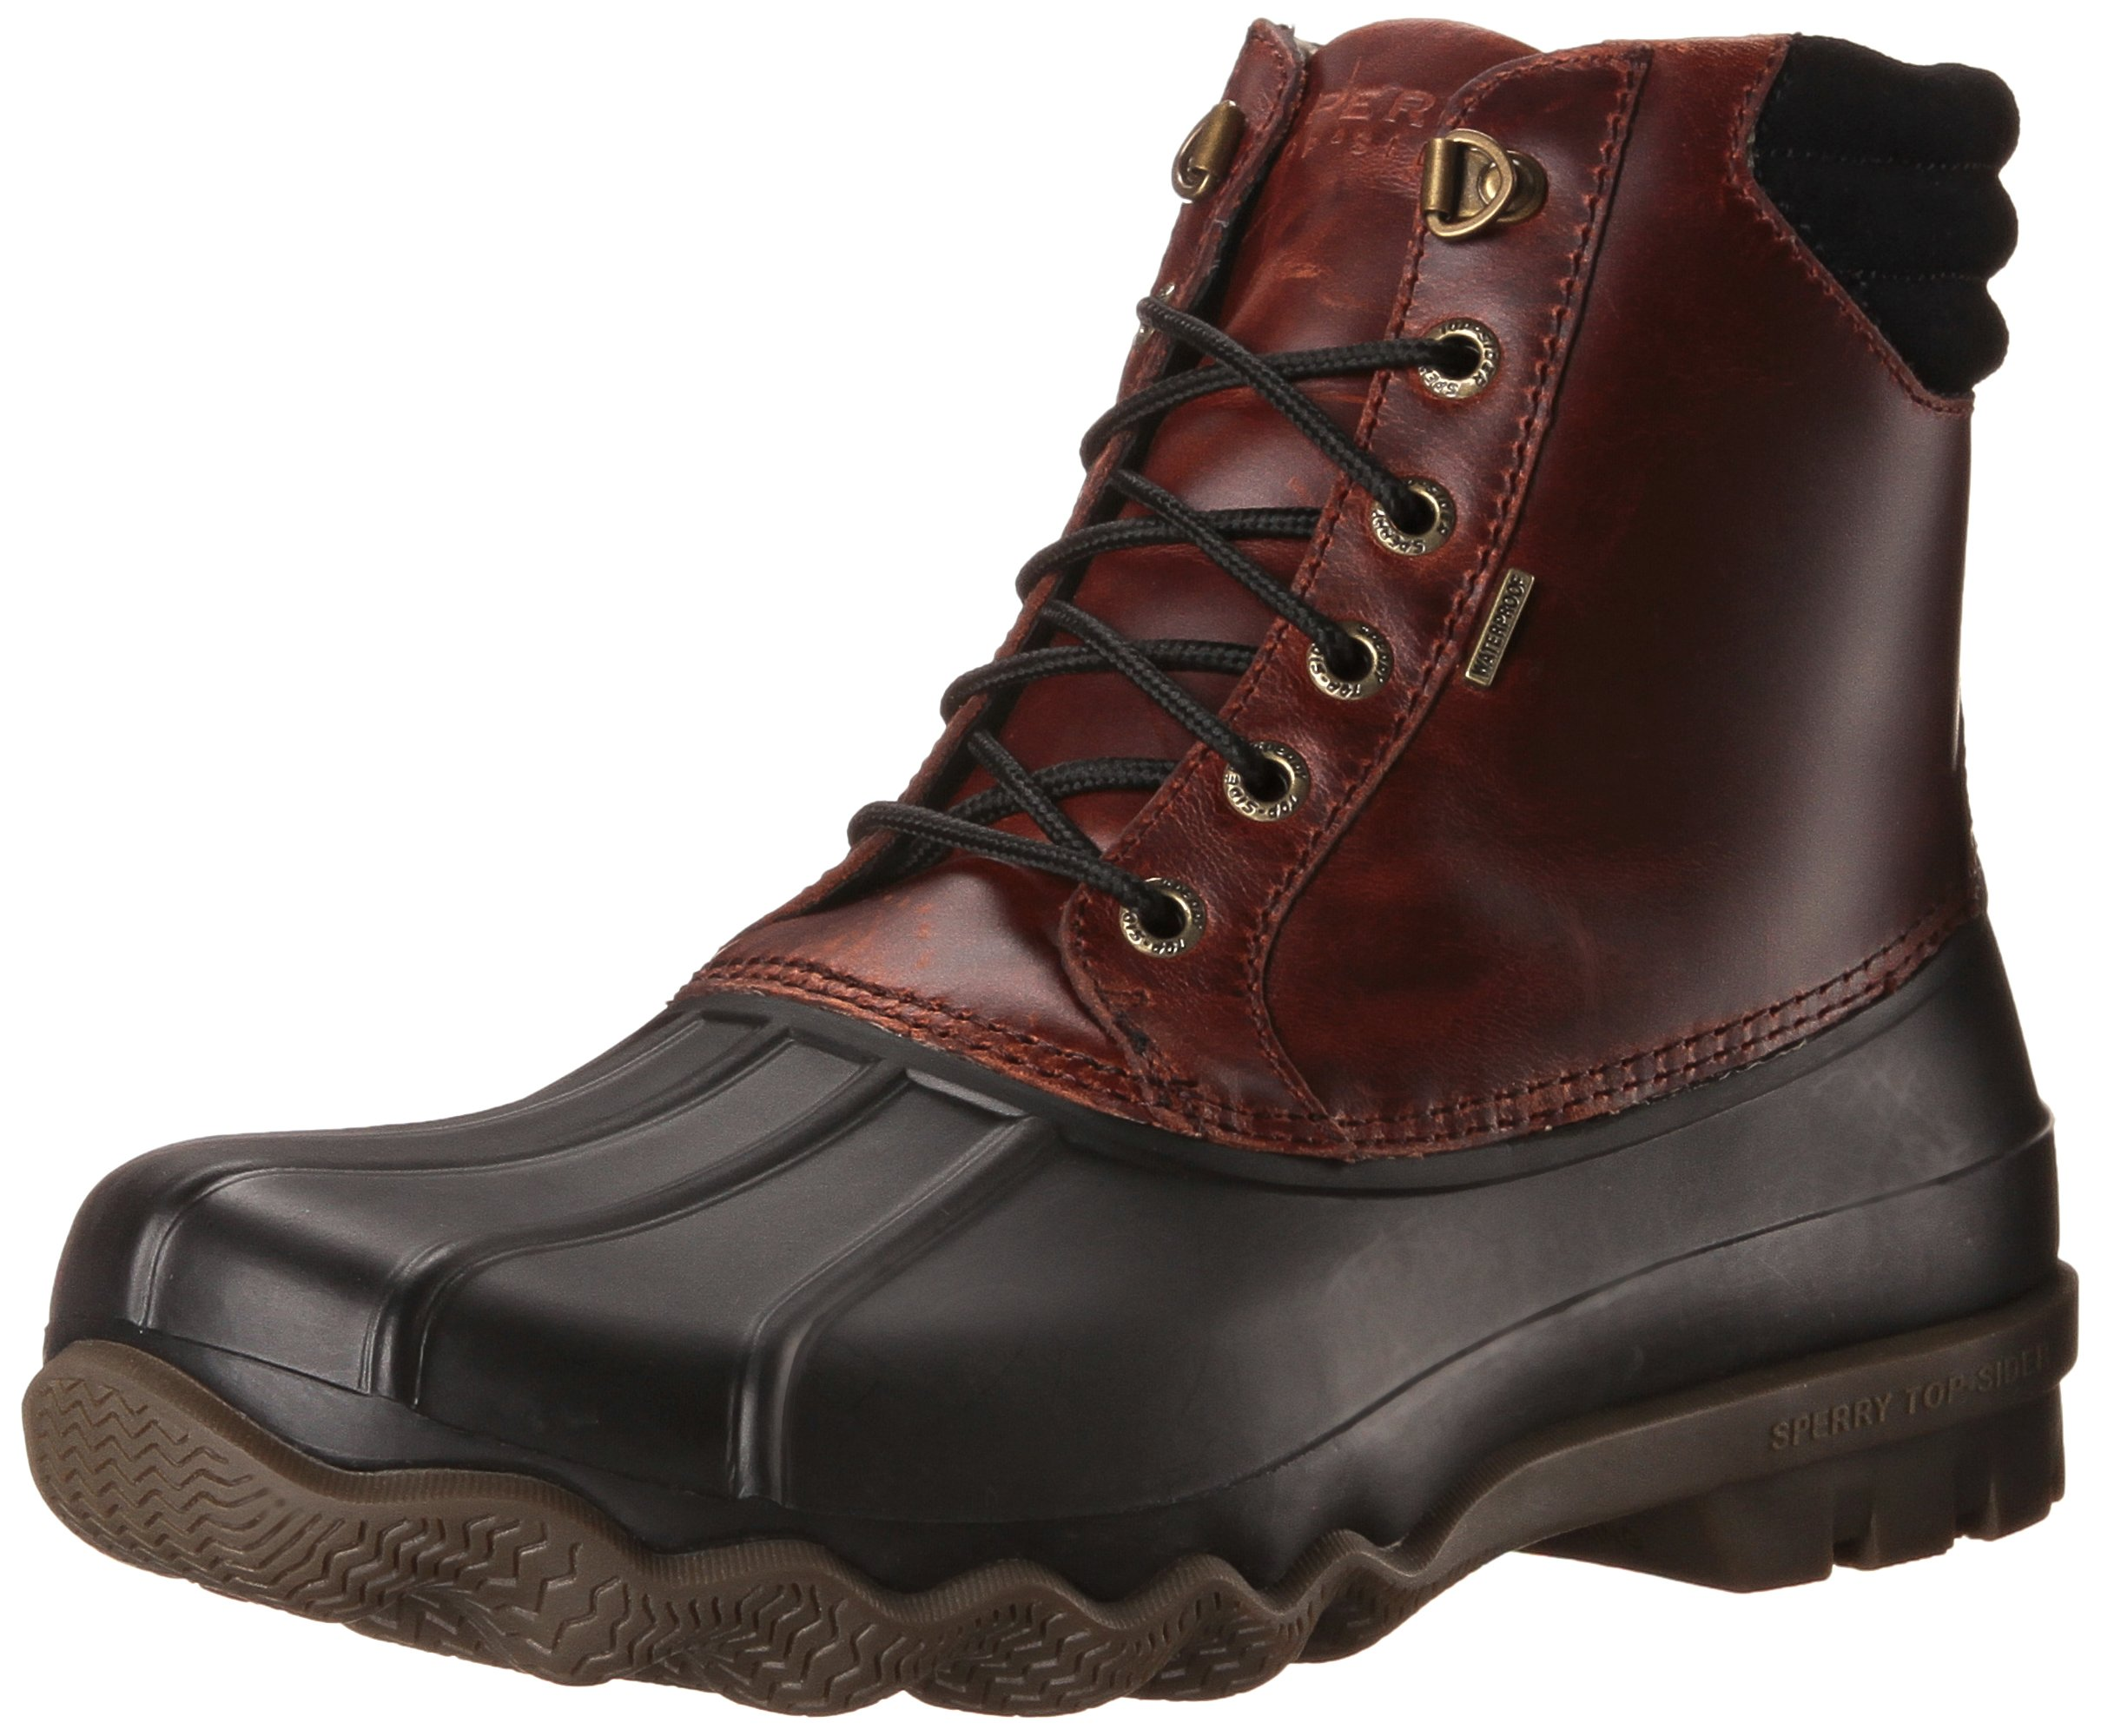 Sperry Mens Avenue Duck Boots, Black/Amaretto, 10.5 by SPERRY